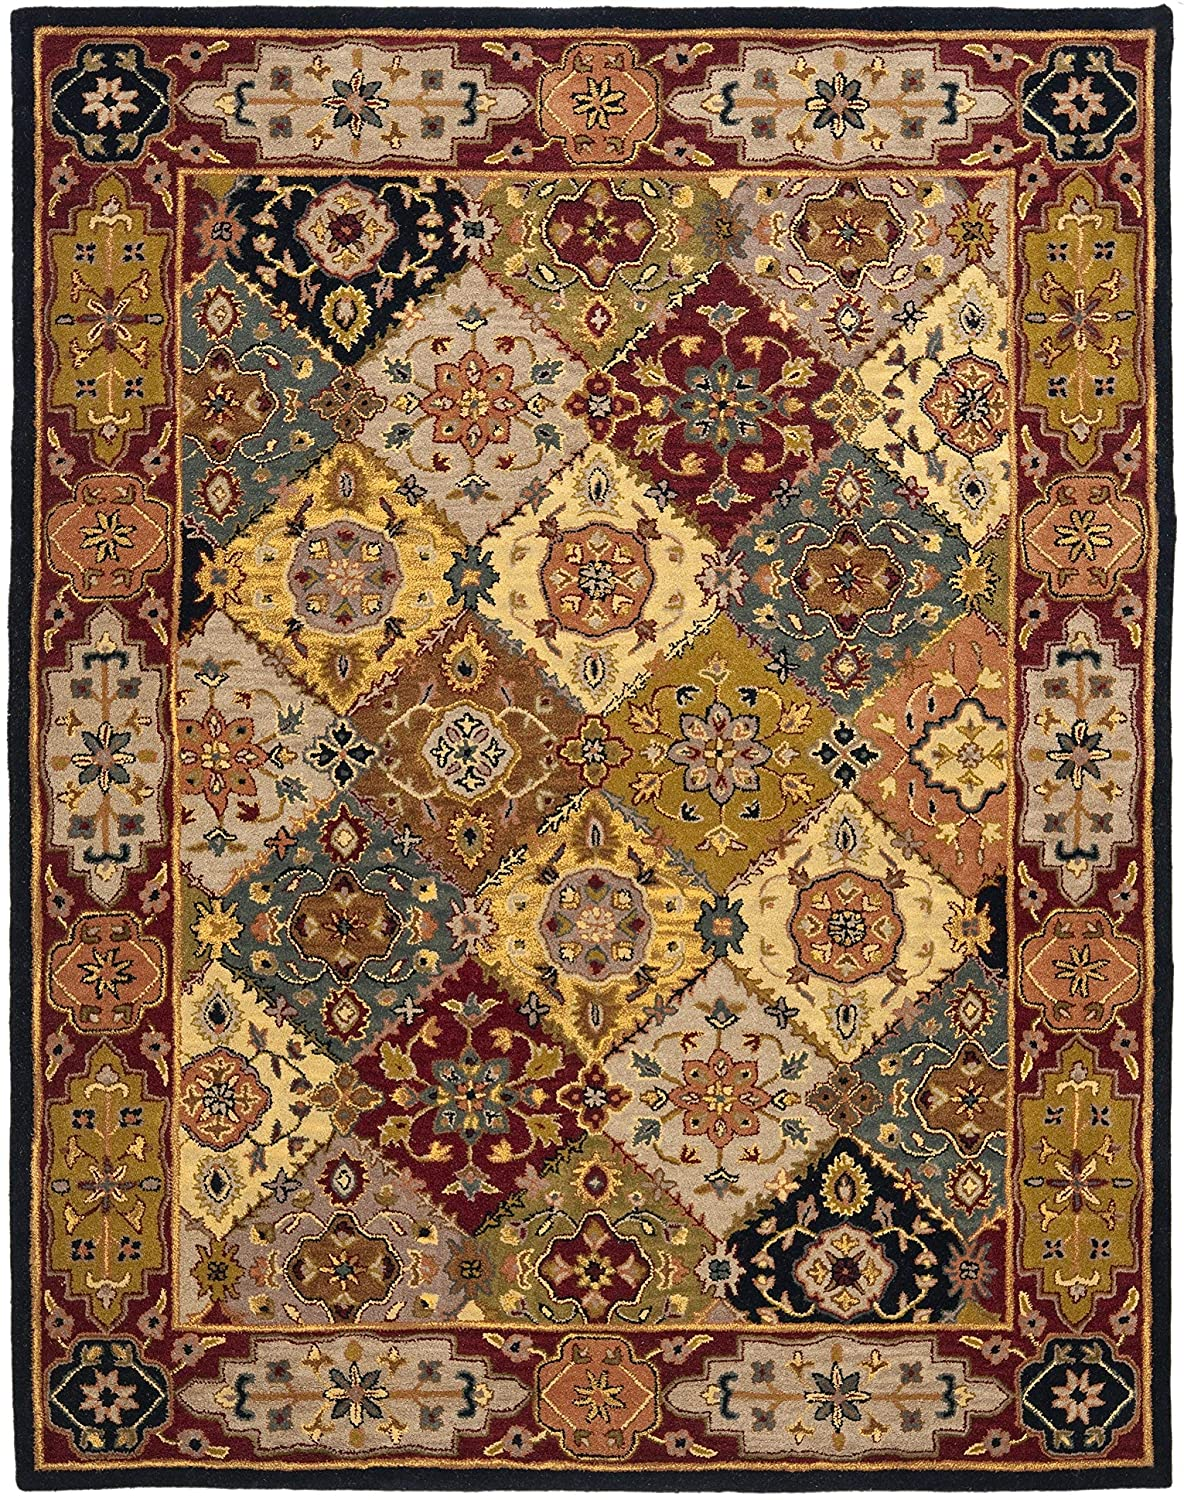 Safavieh Heritage Collection HG512A Handcrafted Traditional Oriental Multicolored Wool Runner HG512A-28 23 x 8